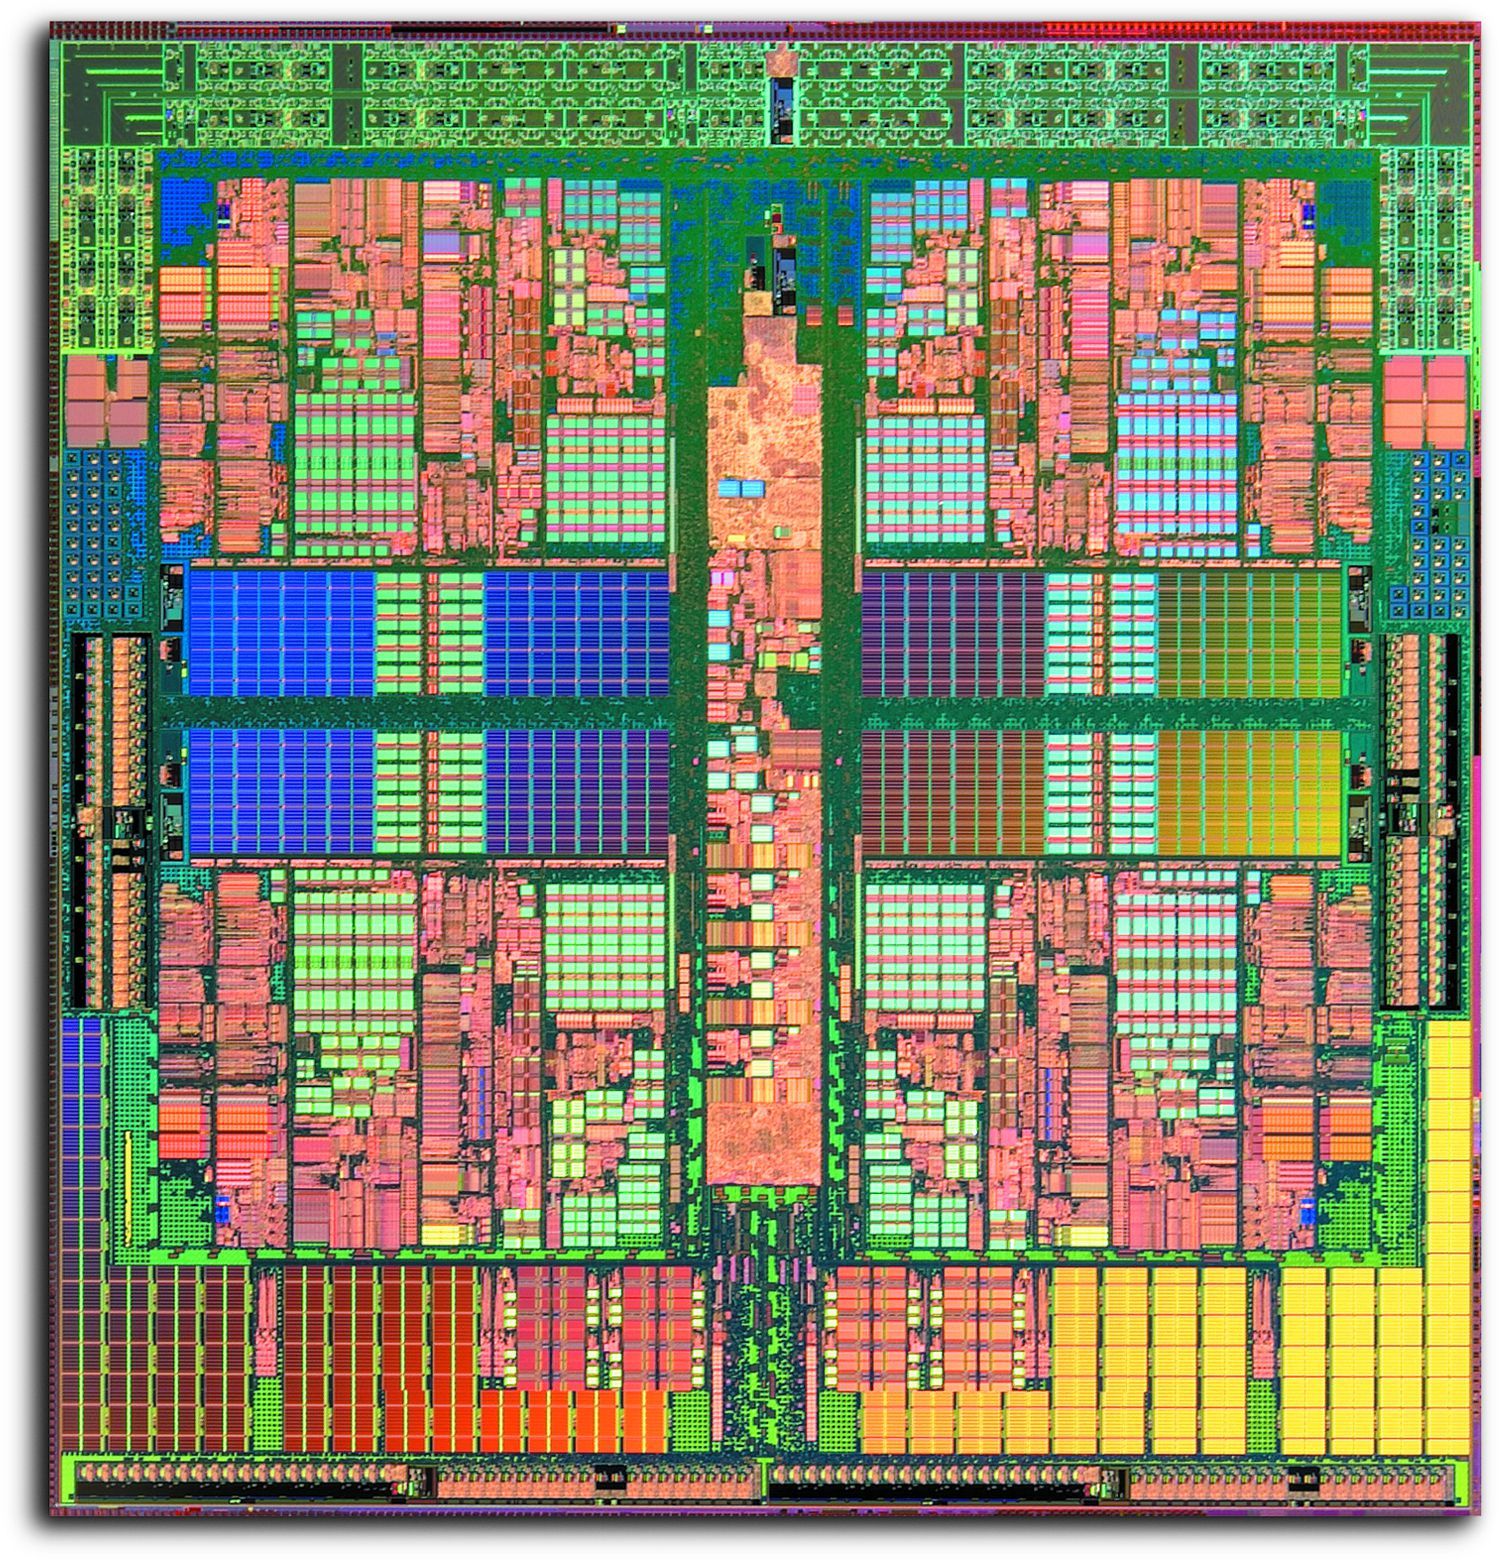 Multiple Core Processors: Is More Always Better?